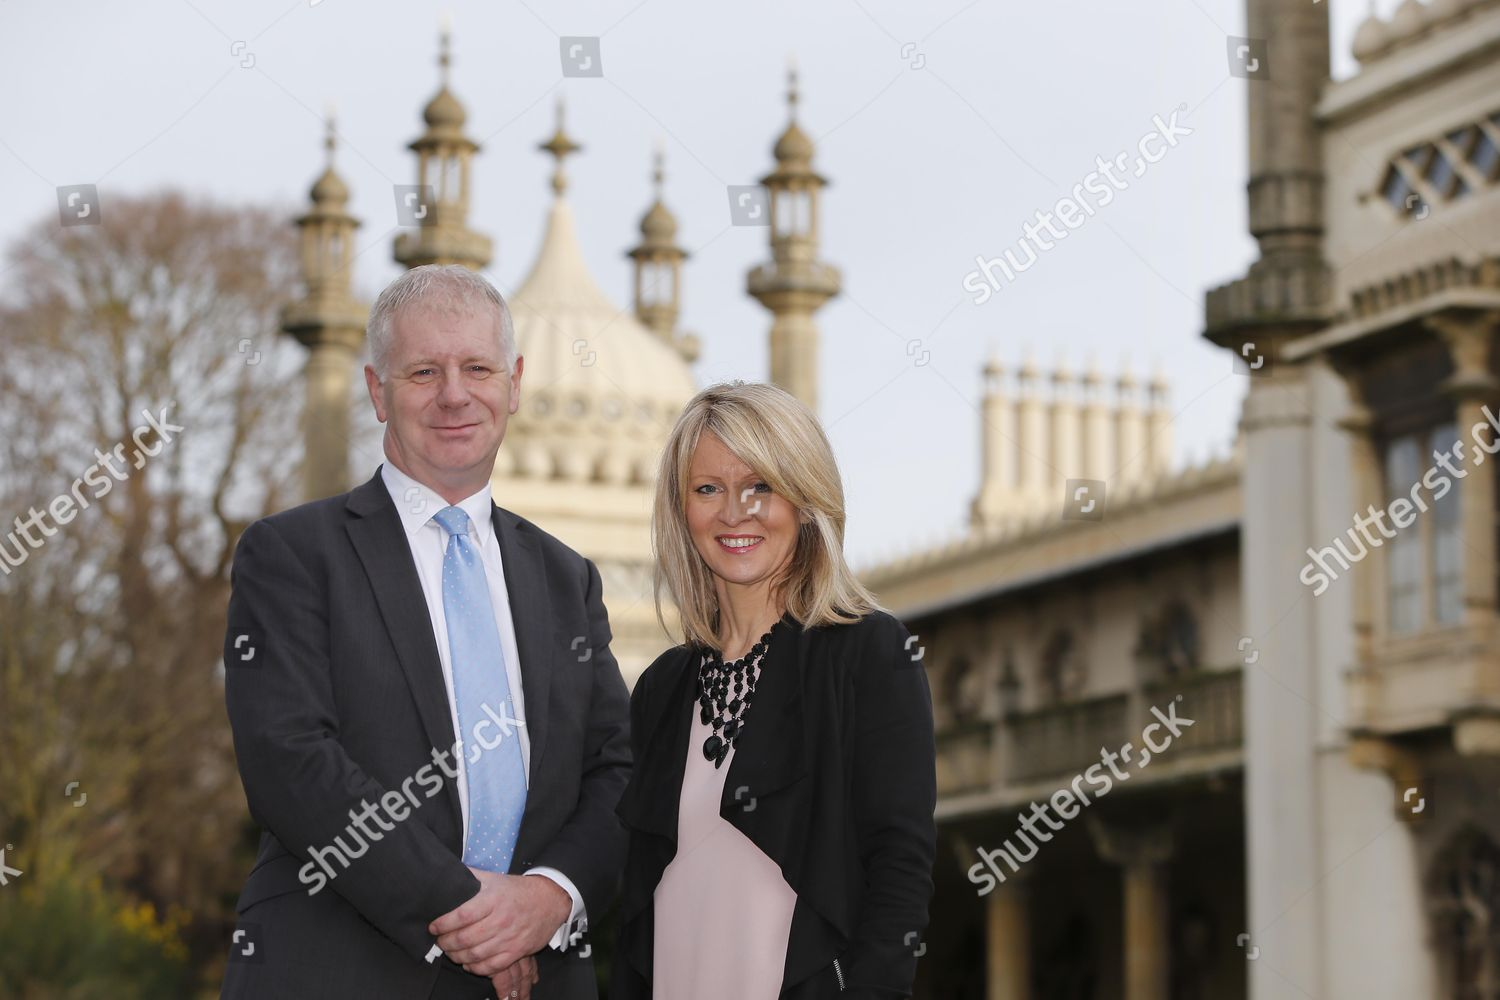 Candid Camera:  Clarence Mitchell - Page 4 Esther-mcvey-and-clarence-mitchell-photocall-royal-pavillion-brighton-britain-shutterstock-editorial-4302683h